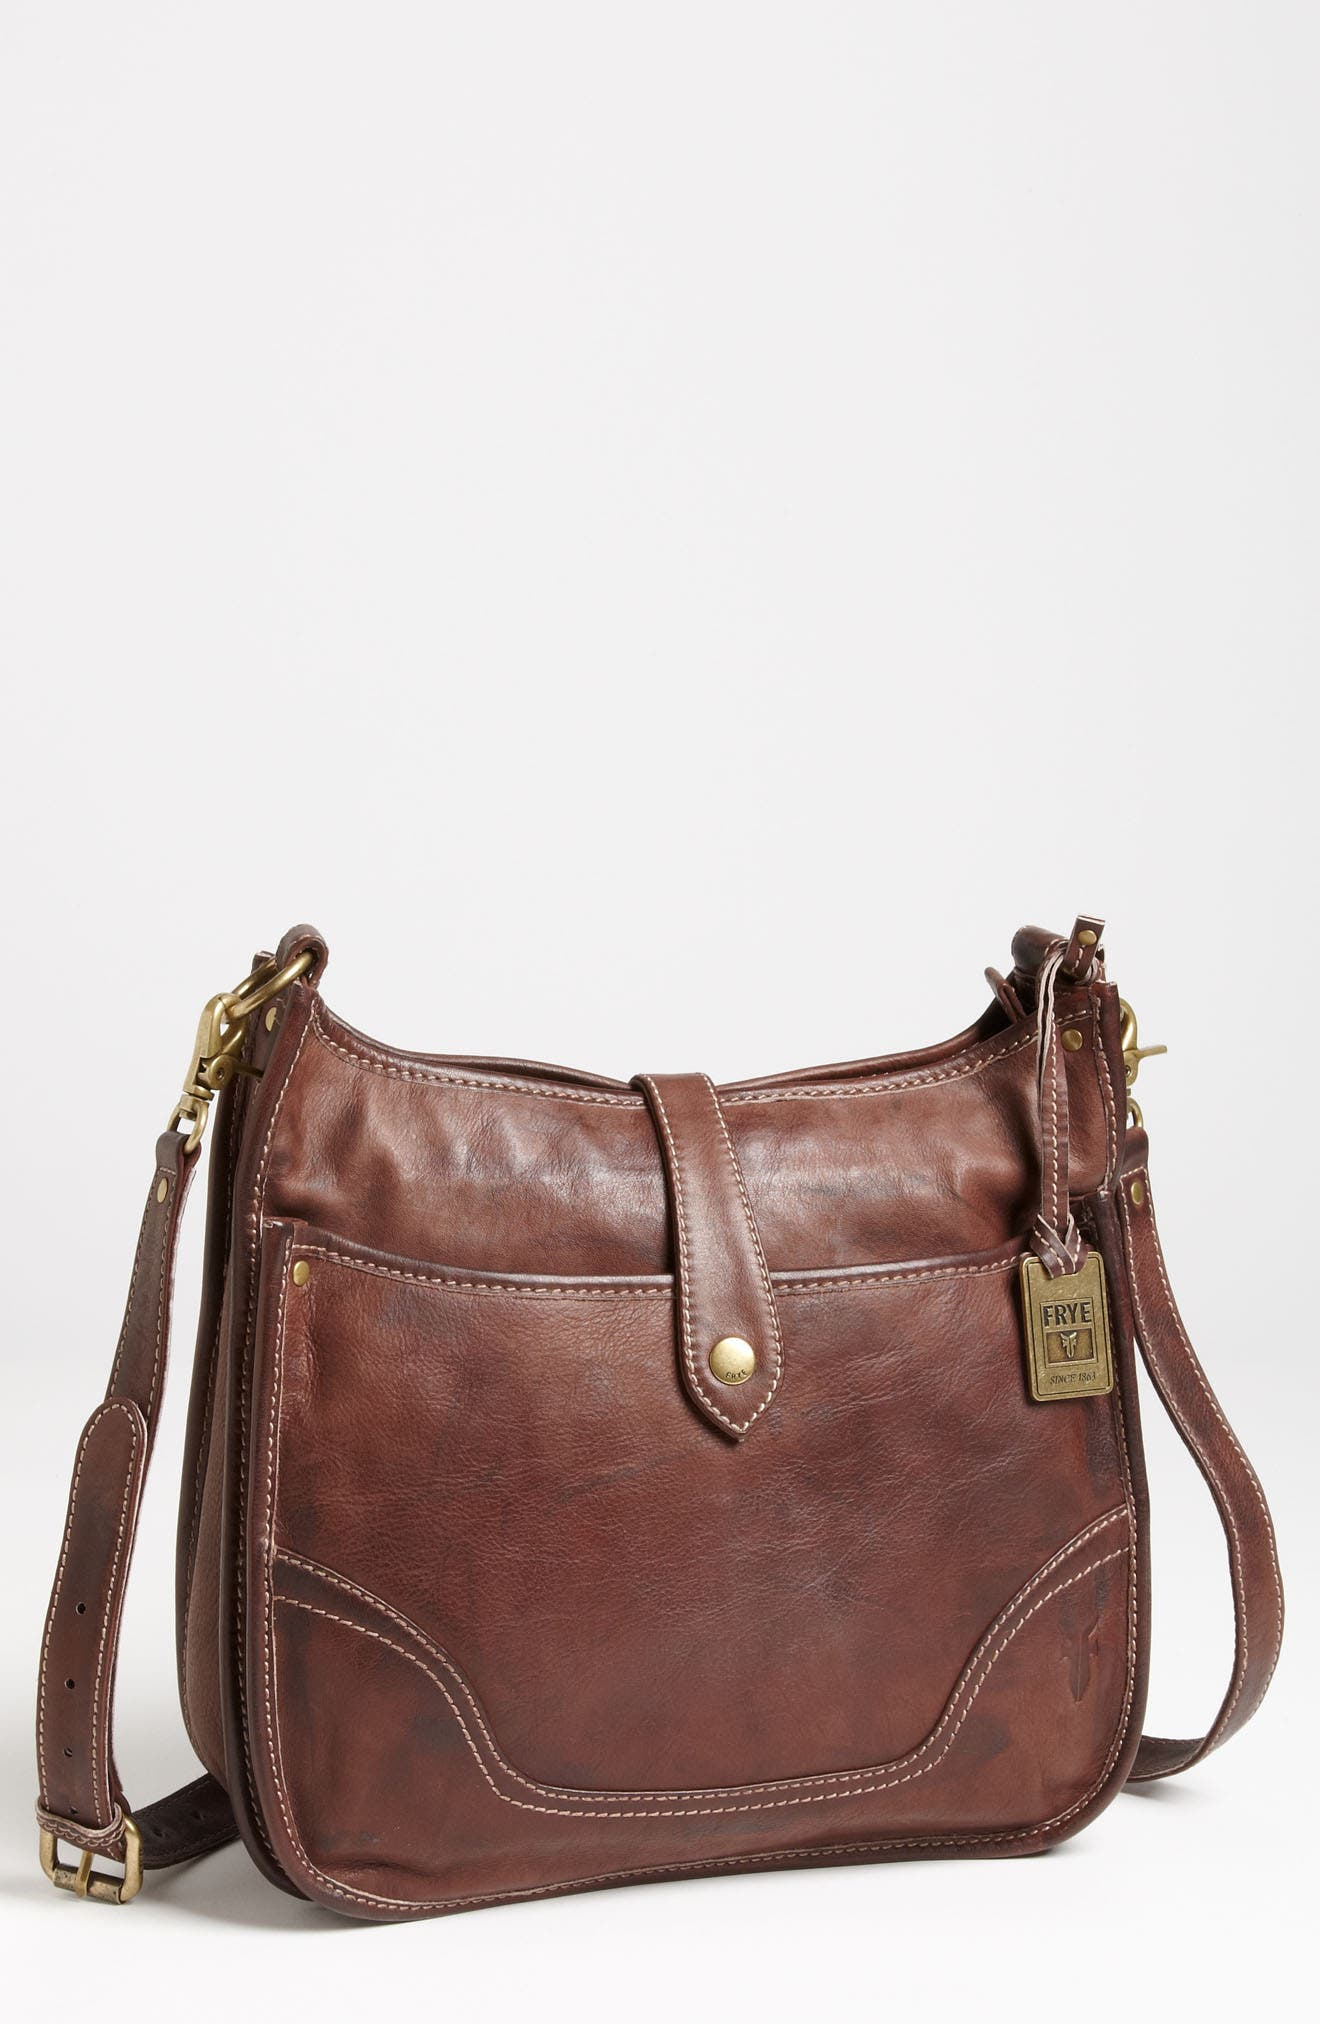 Main Image - Frye 'Campus' Leather Crossbody Bag